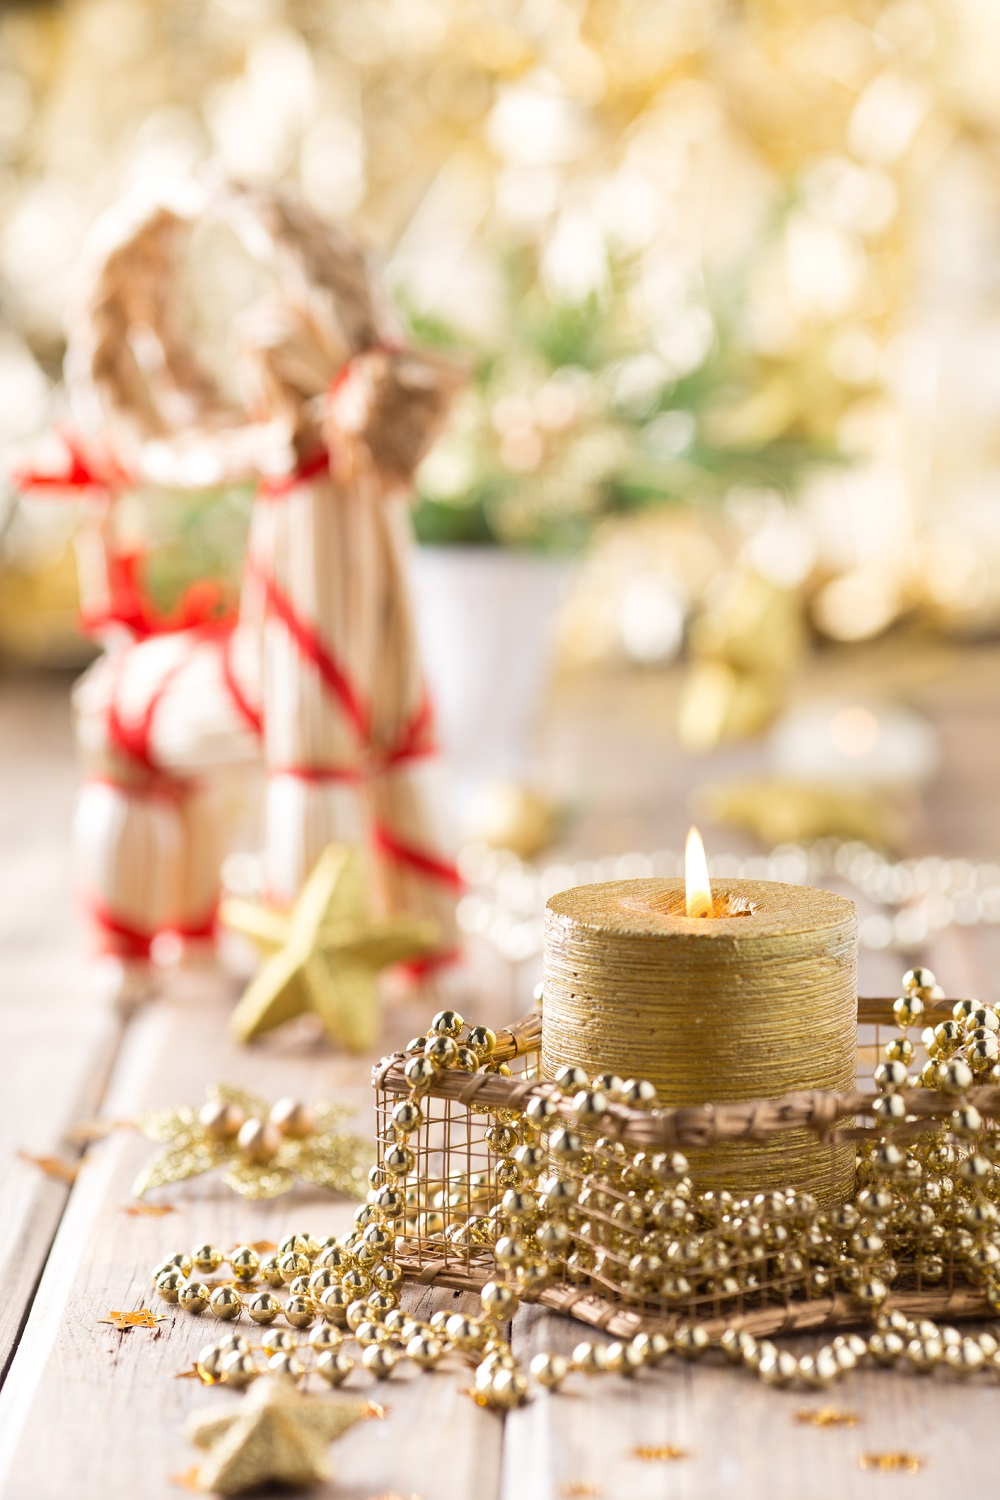 Holiday Decor Made Easier with At Home